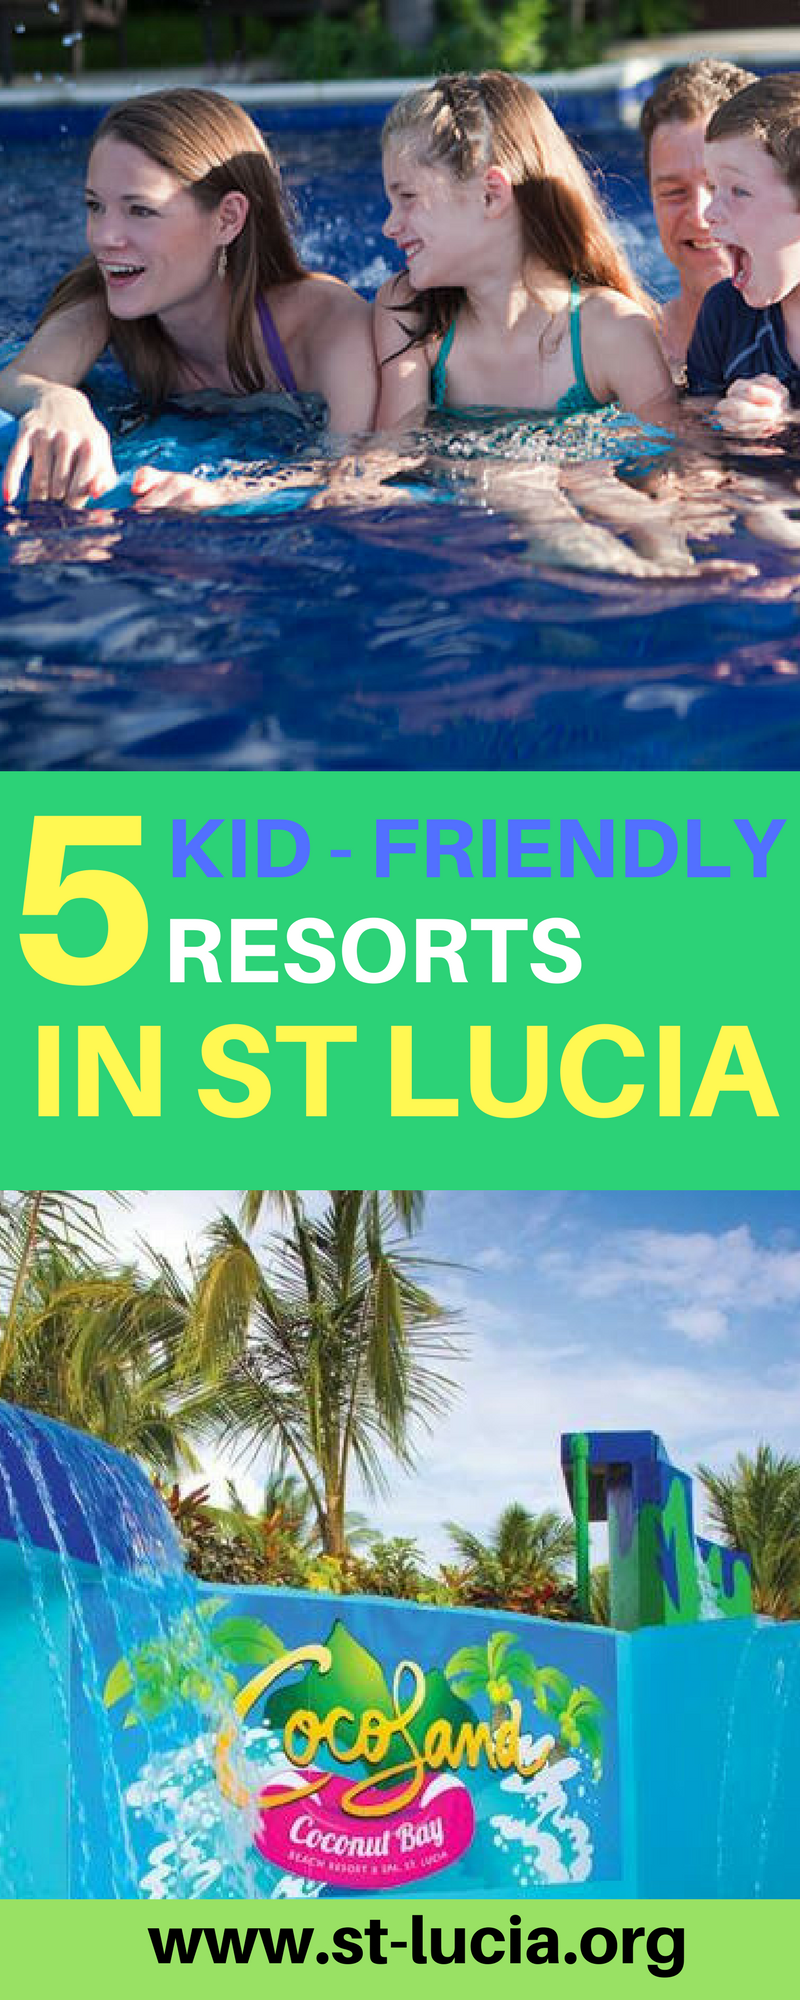 5 Kid friendly resorts in St Lucia